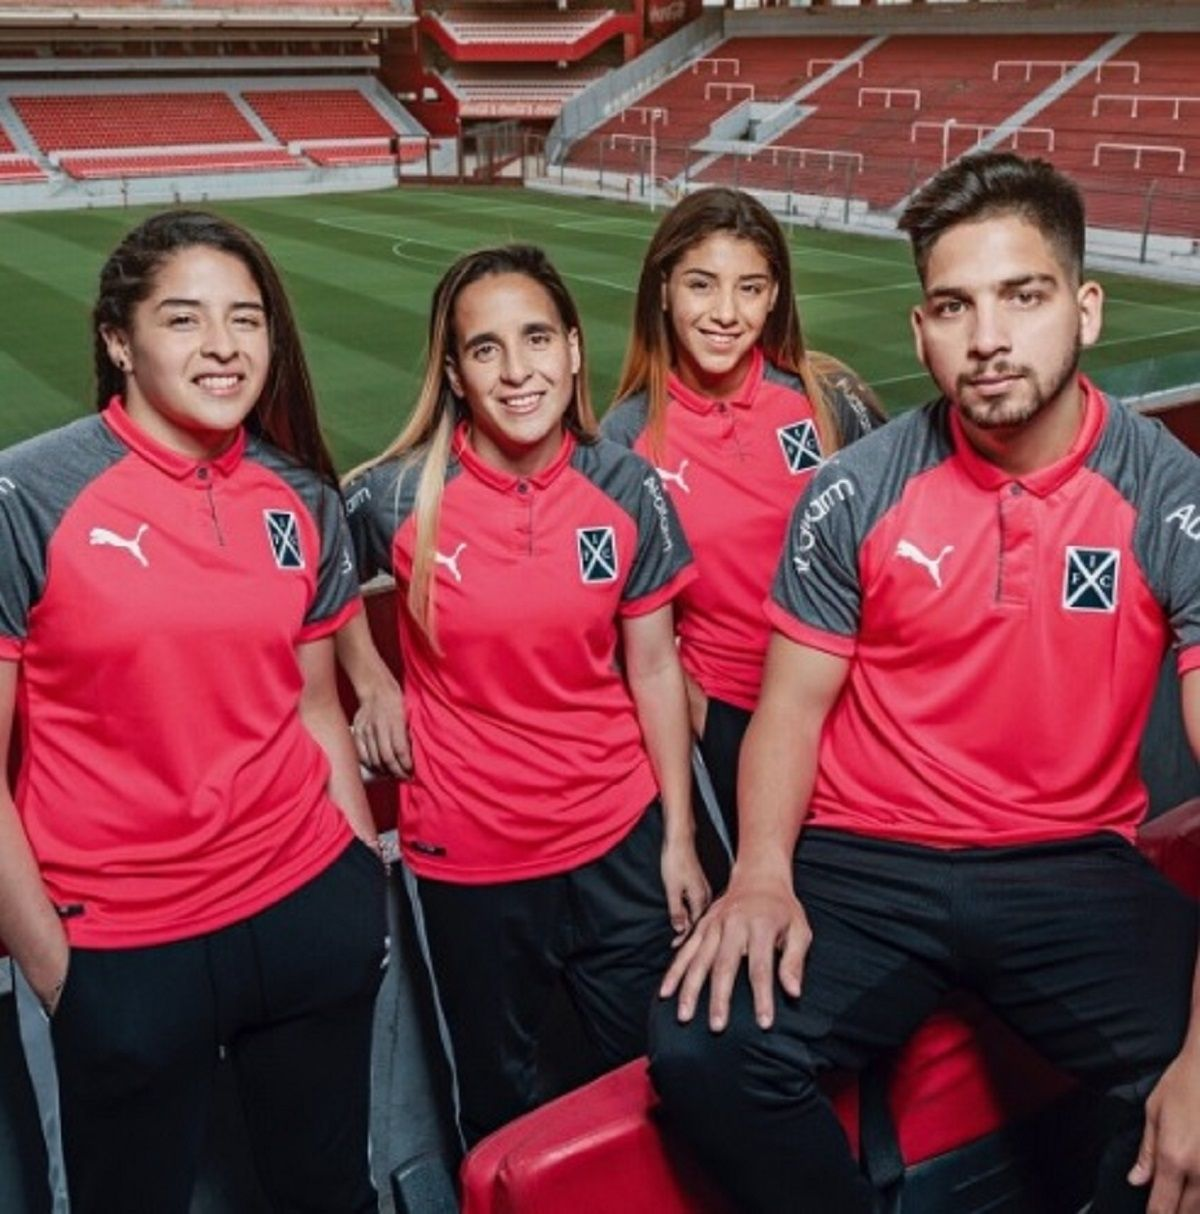 Camiseta de Independiente contra el cáncer de mama - Crédito: @Independiente